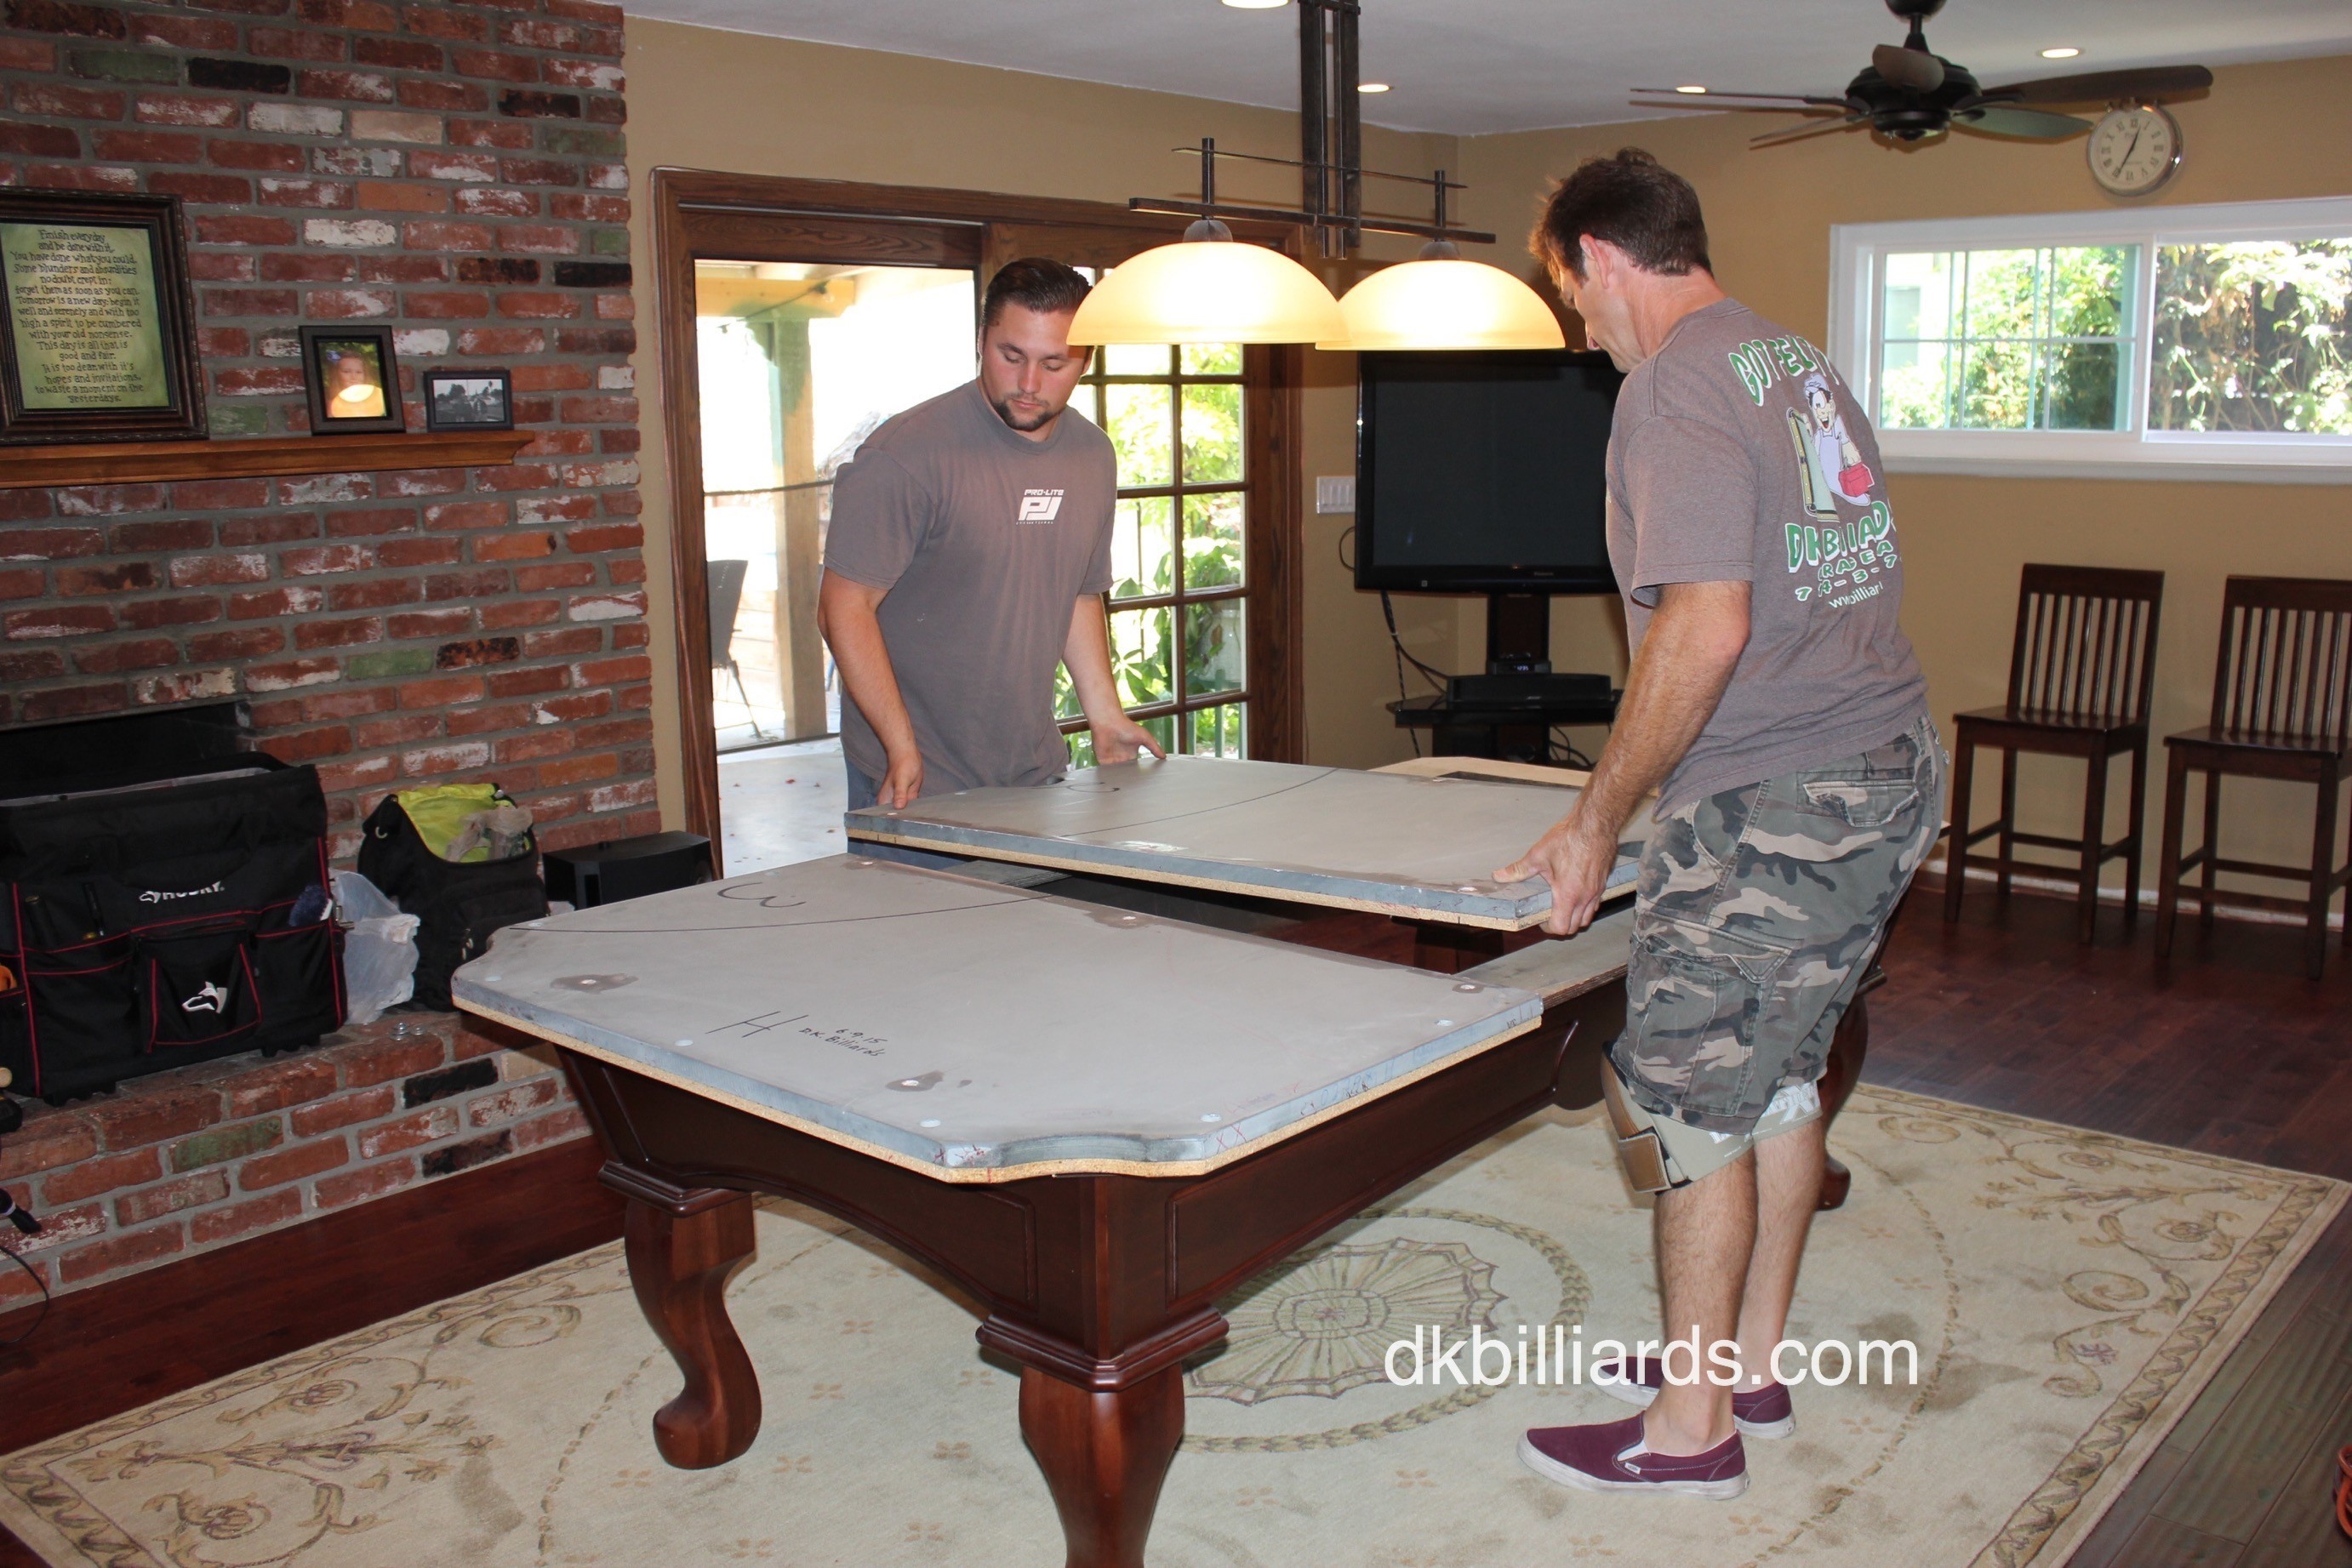 One Piece Slate Pool Table MovingHow To Move A Slate Pool Table - Moving a pool table in one piece